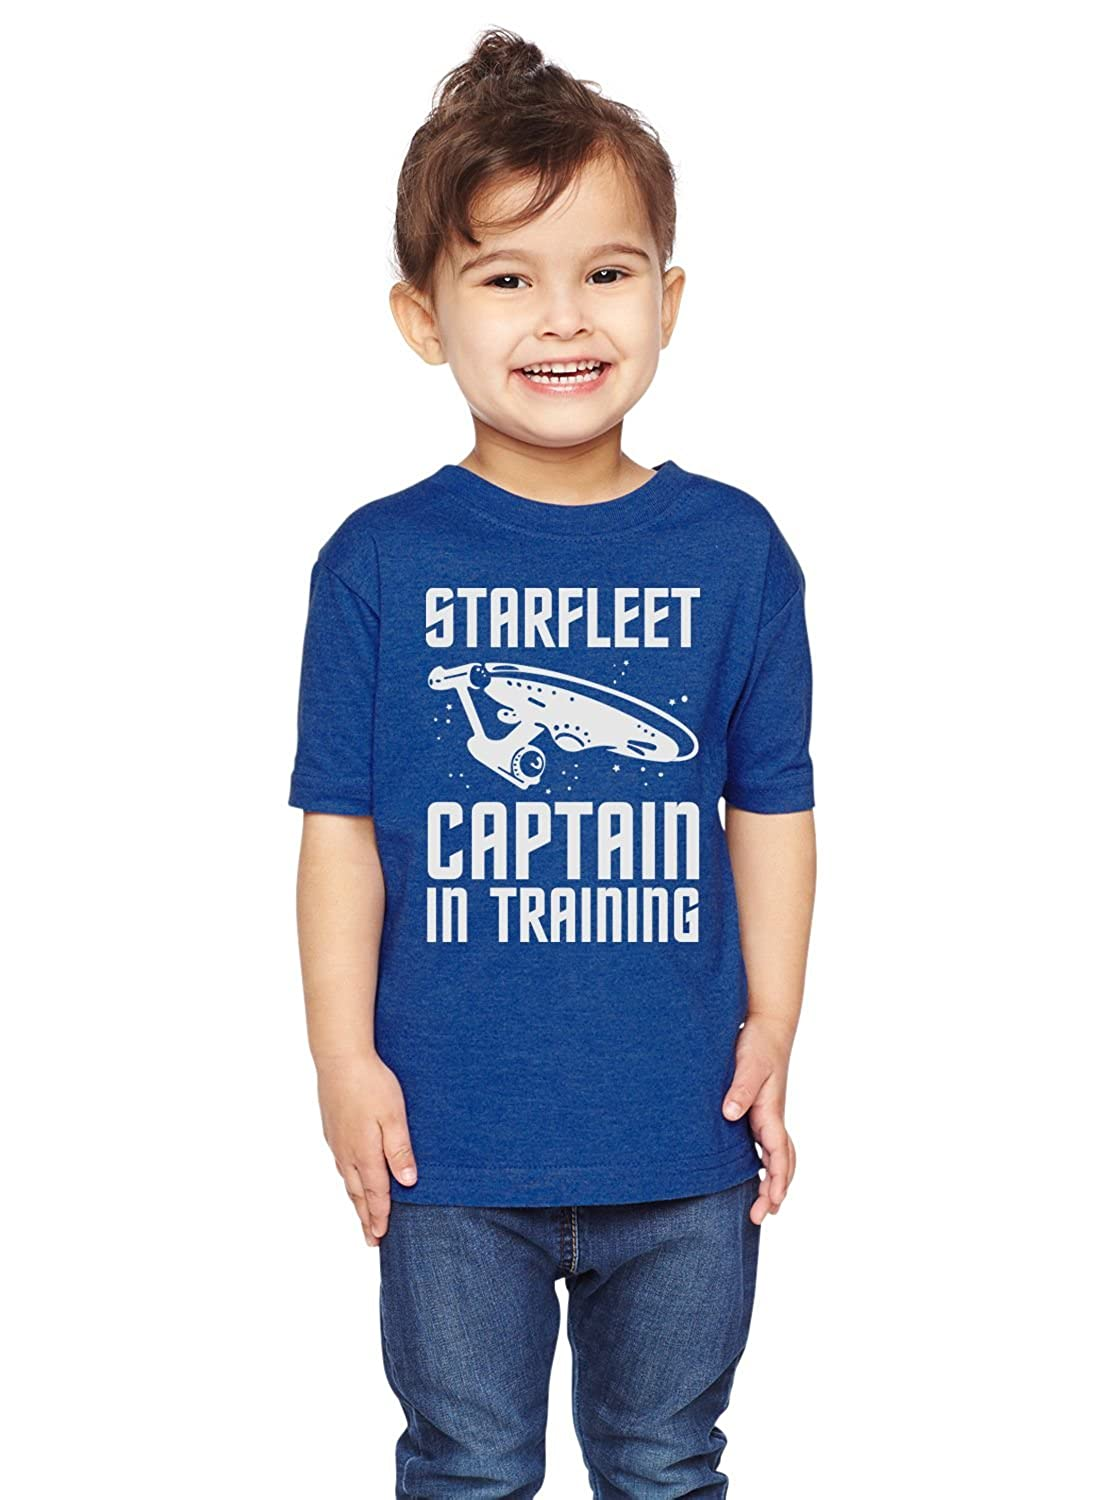 Brain Juice Tees Starfleet Captain in Training Star Trek Unisex Toddler Shirt